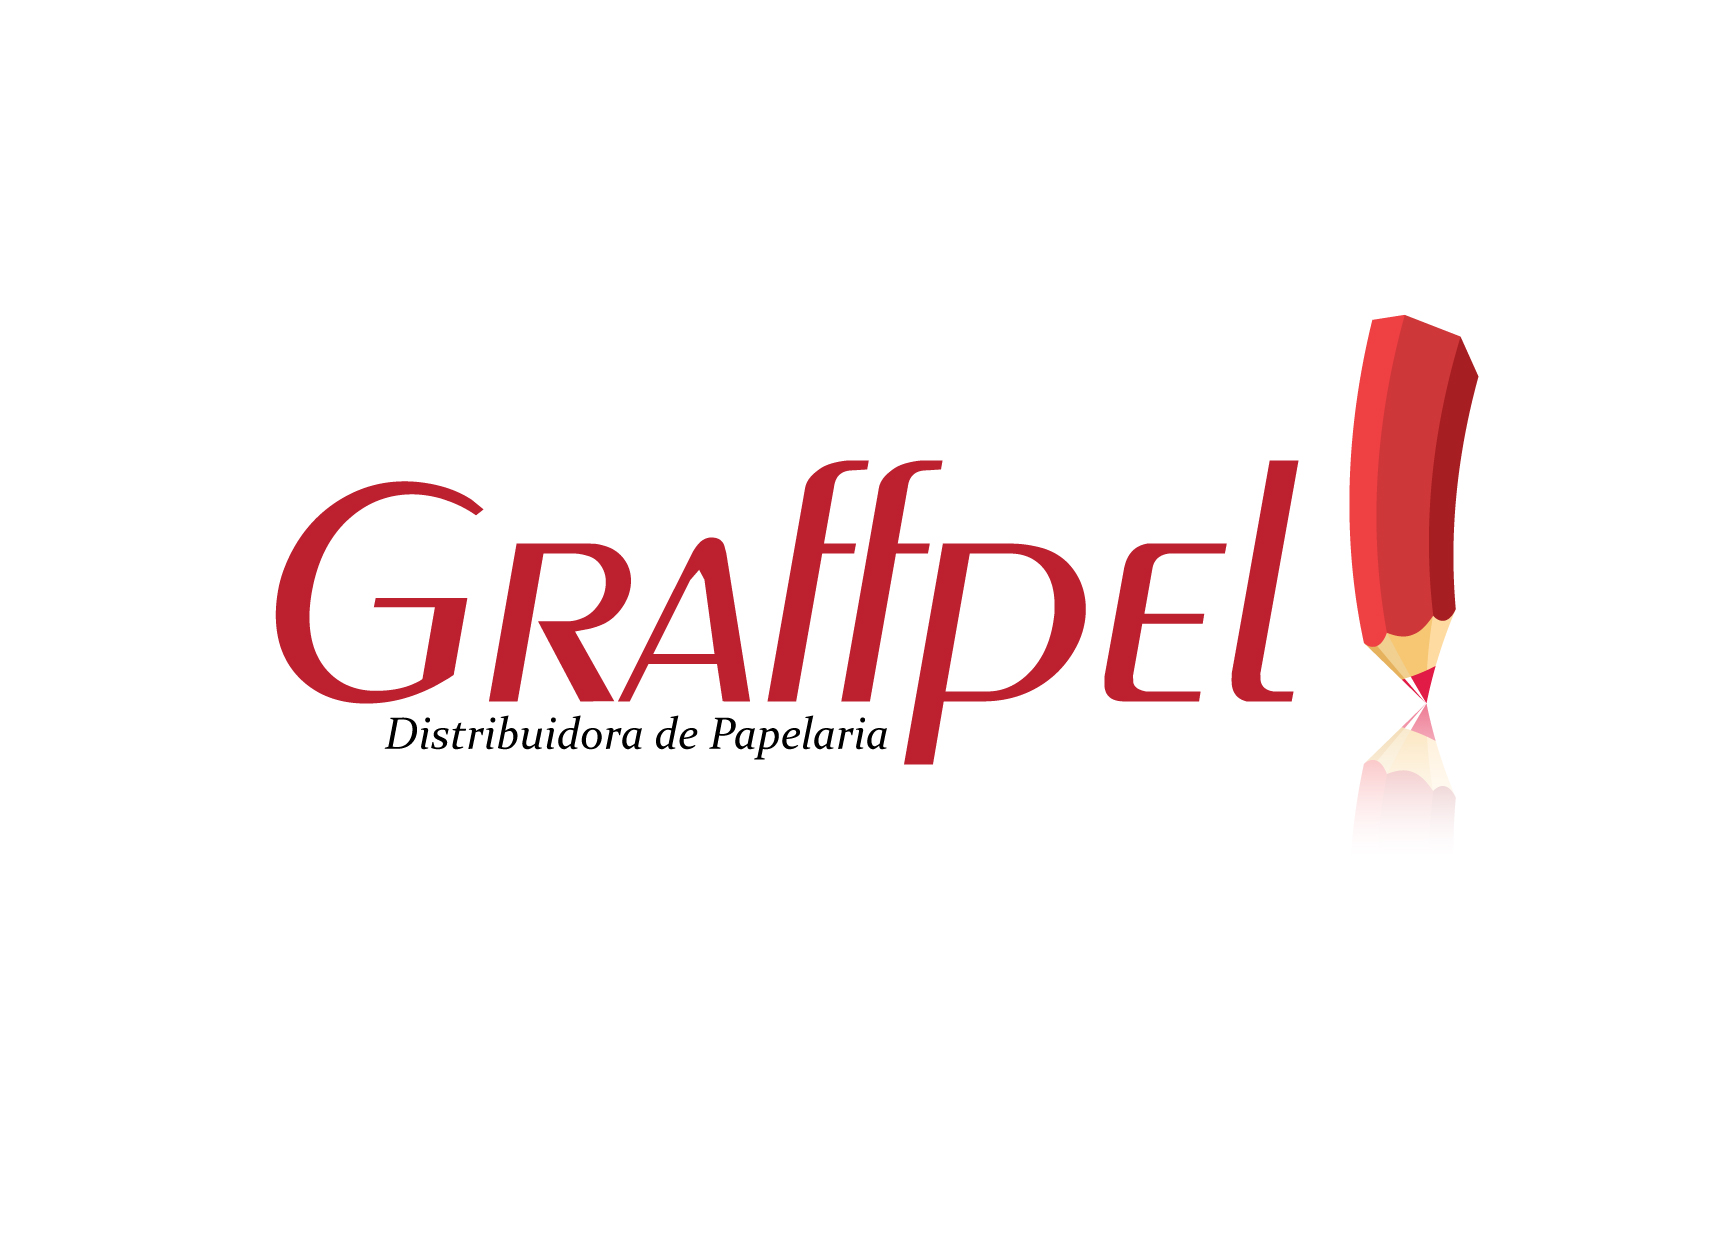 Logotipo | Graffpel